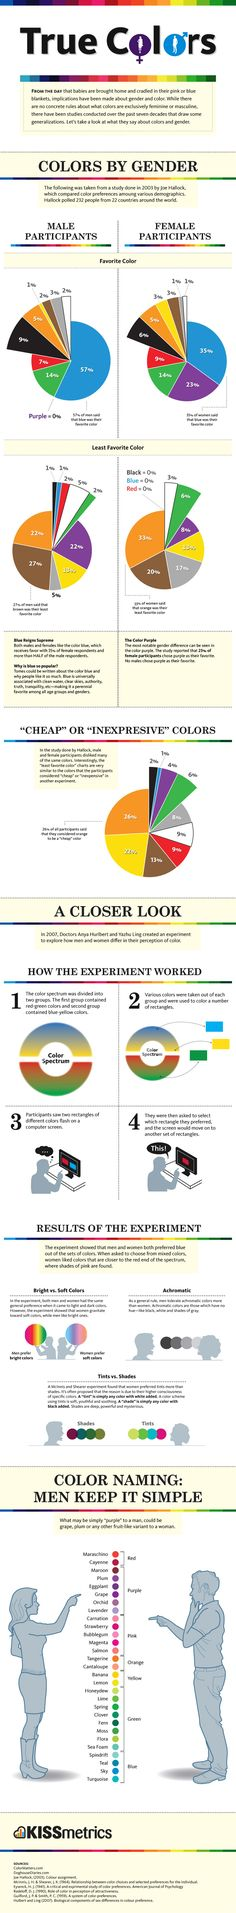 Insights on Male vs. Female Color Perception [Infographic]